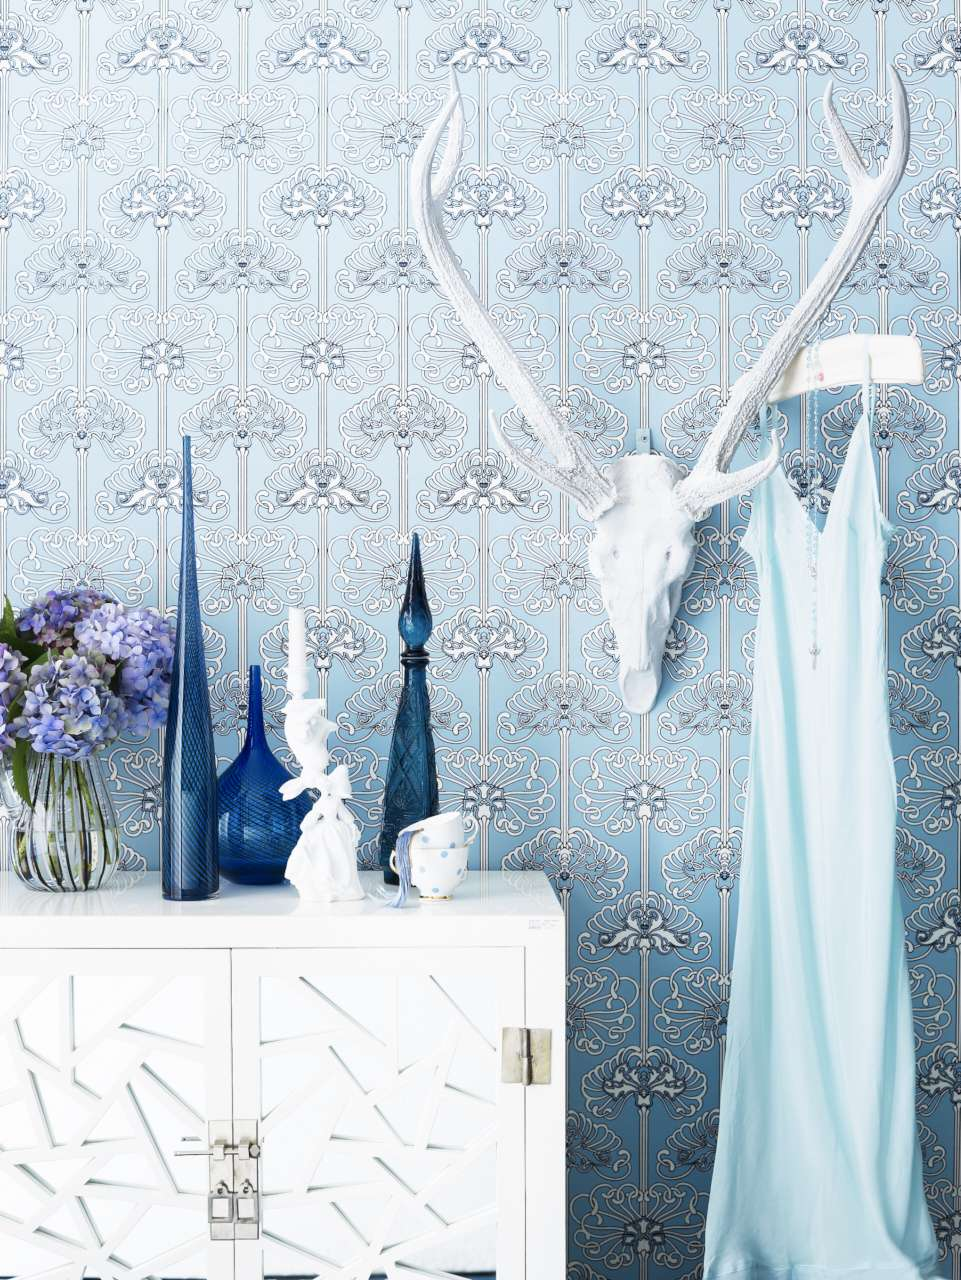 CIN-00031657 Blue Wallpaper & Rams Head -024